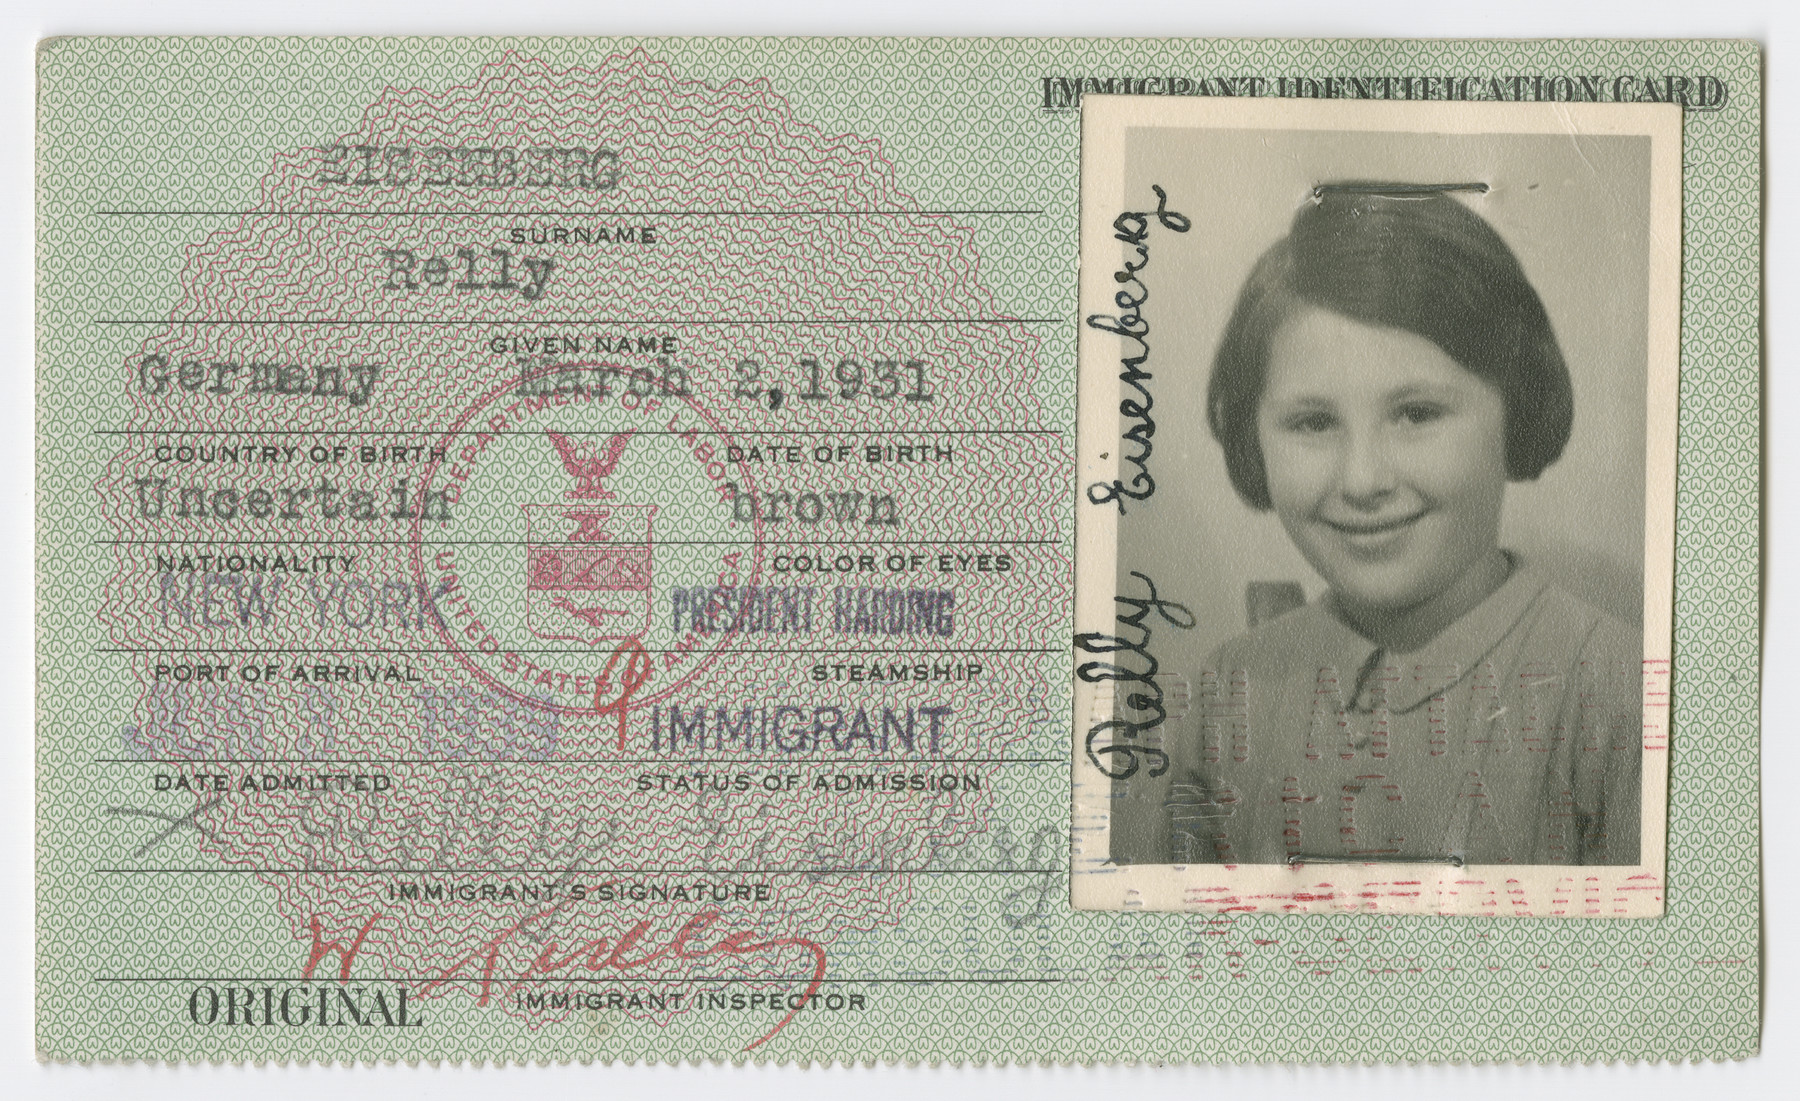 United States Immigrant Identification Card issued to Relly Eisenberg.  It states she was born in Germany though she was born in Vienna.